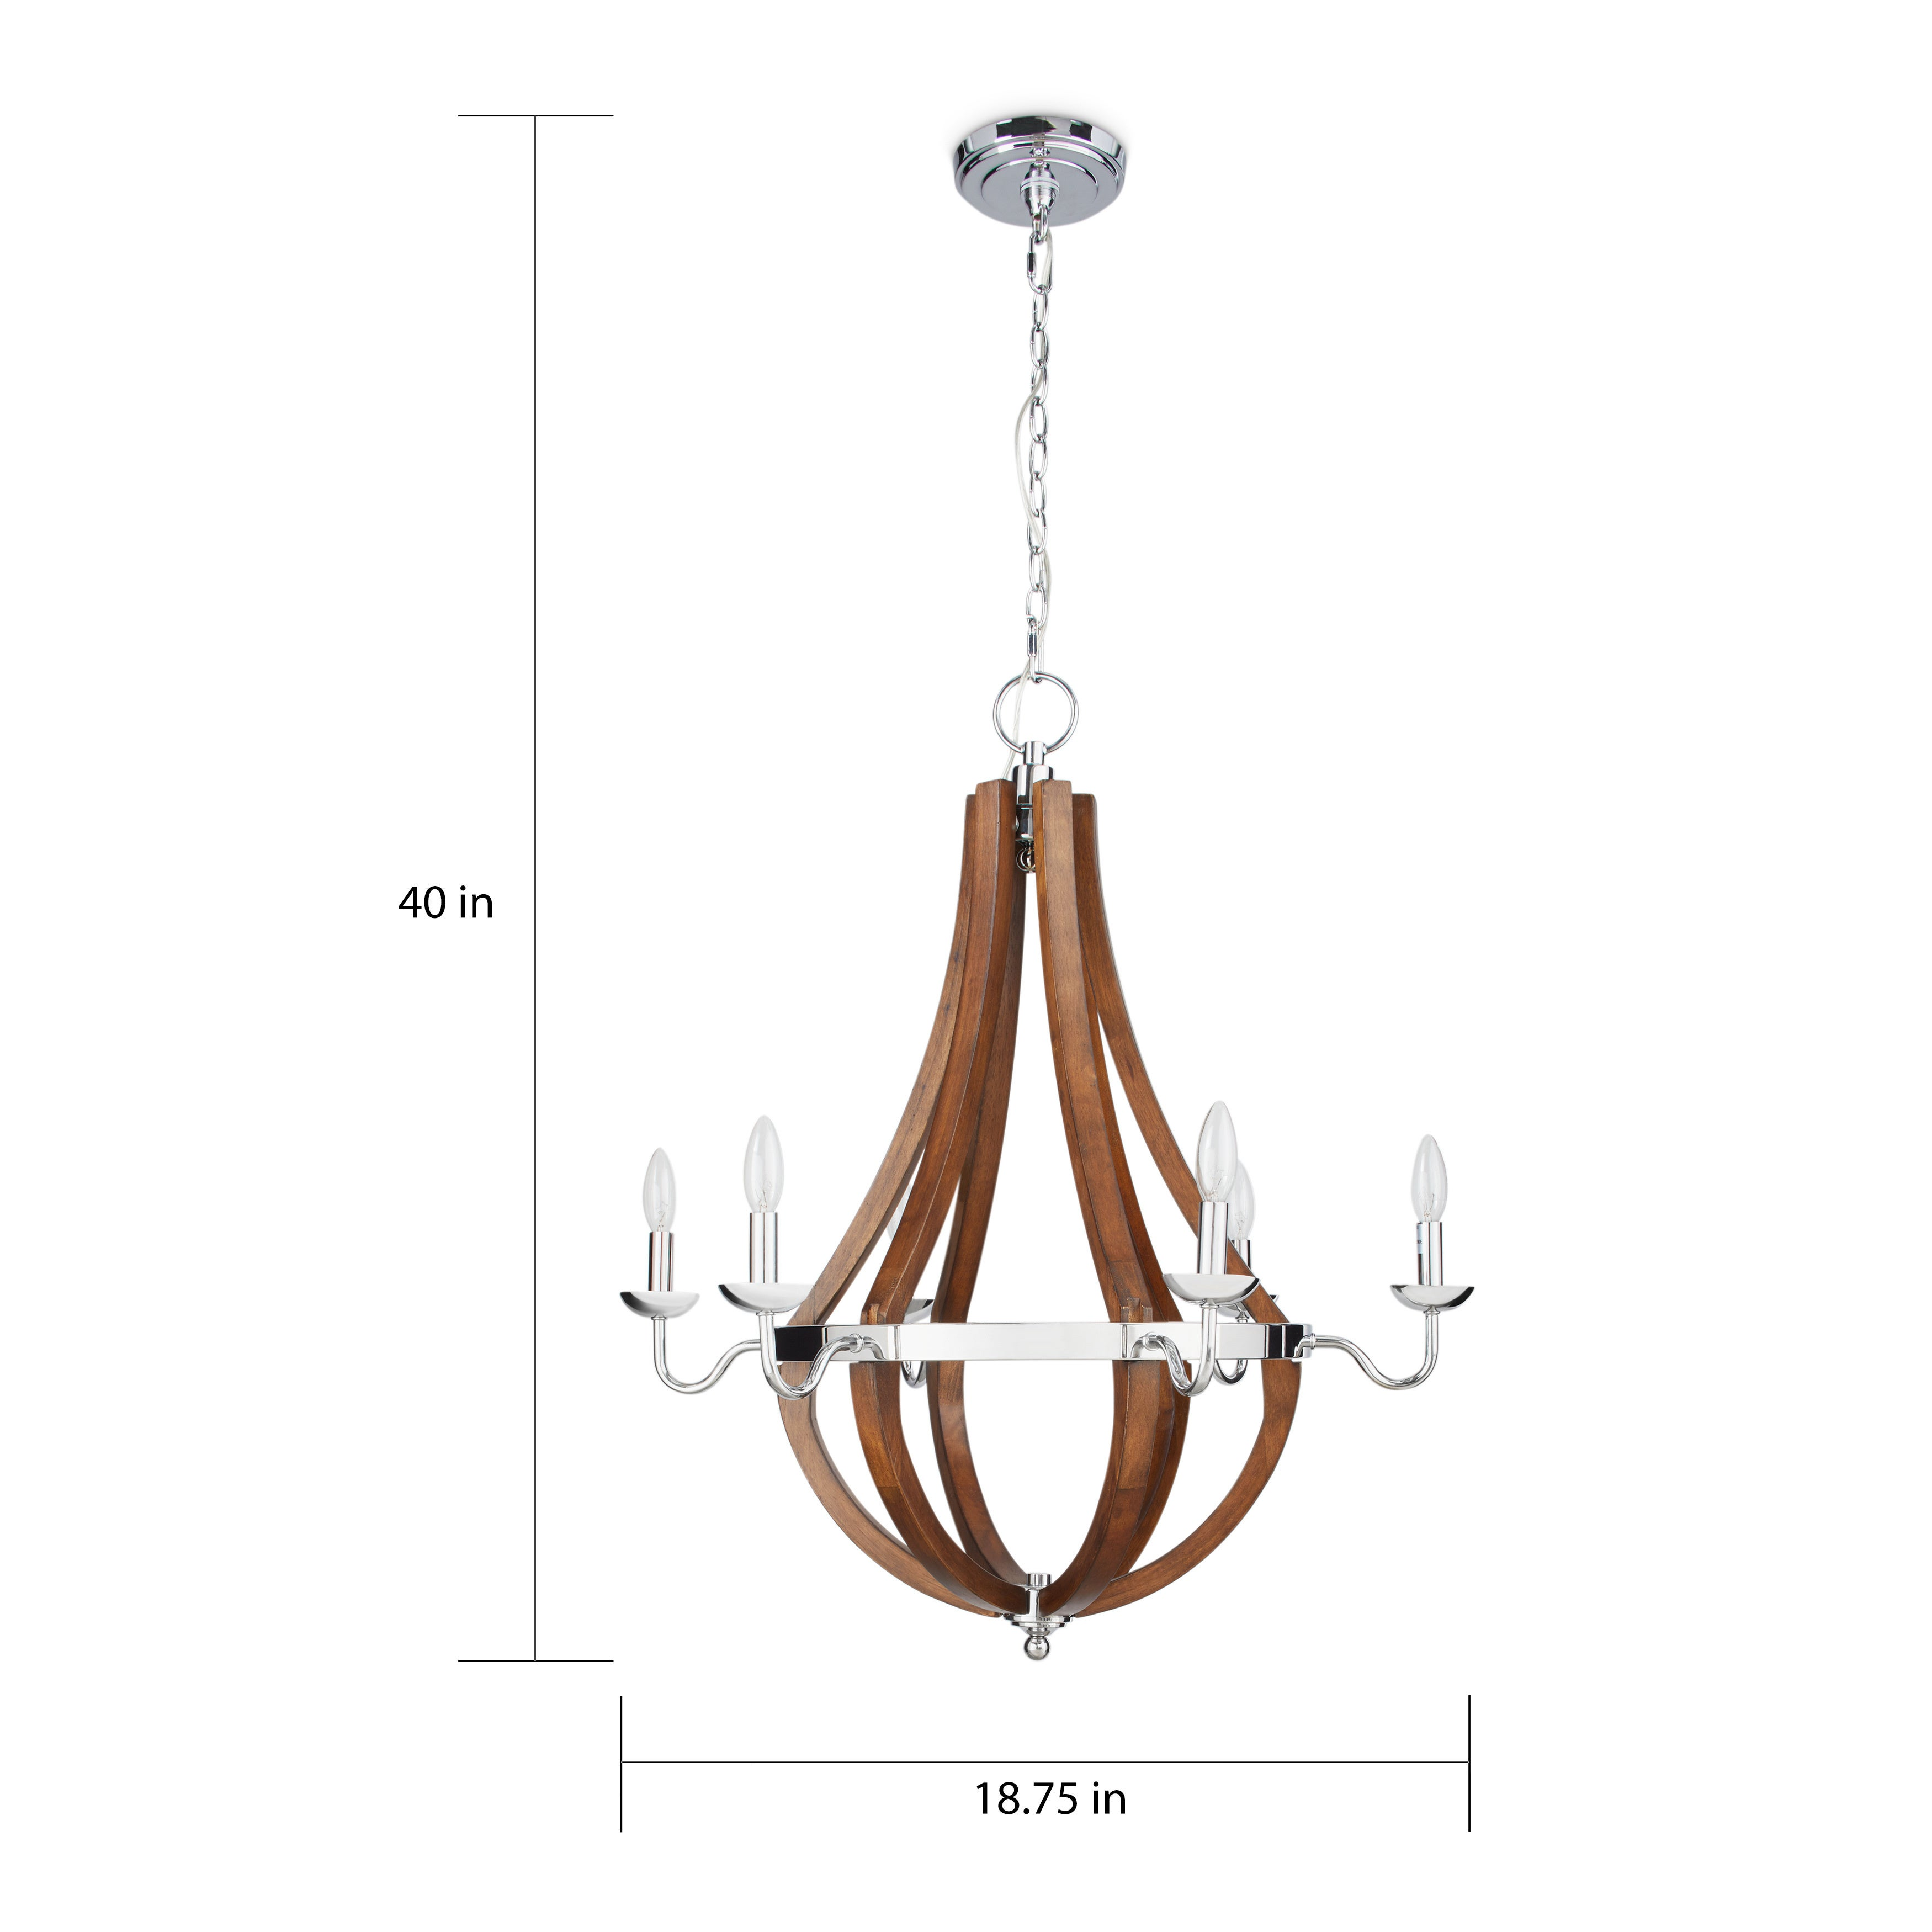 Shop Oliver James Vineyard Wood Chrome 6 Light Chandelier Free Lamps Plus Pendant Lighting Decorative Electrical Wiring Shipping Today 8560169